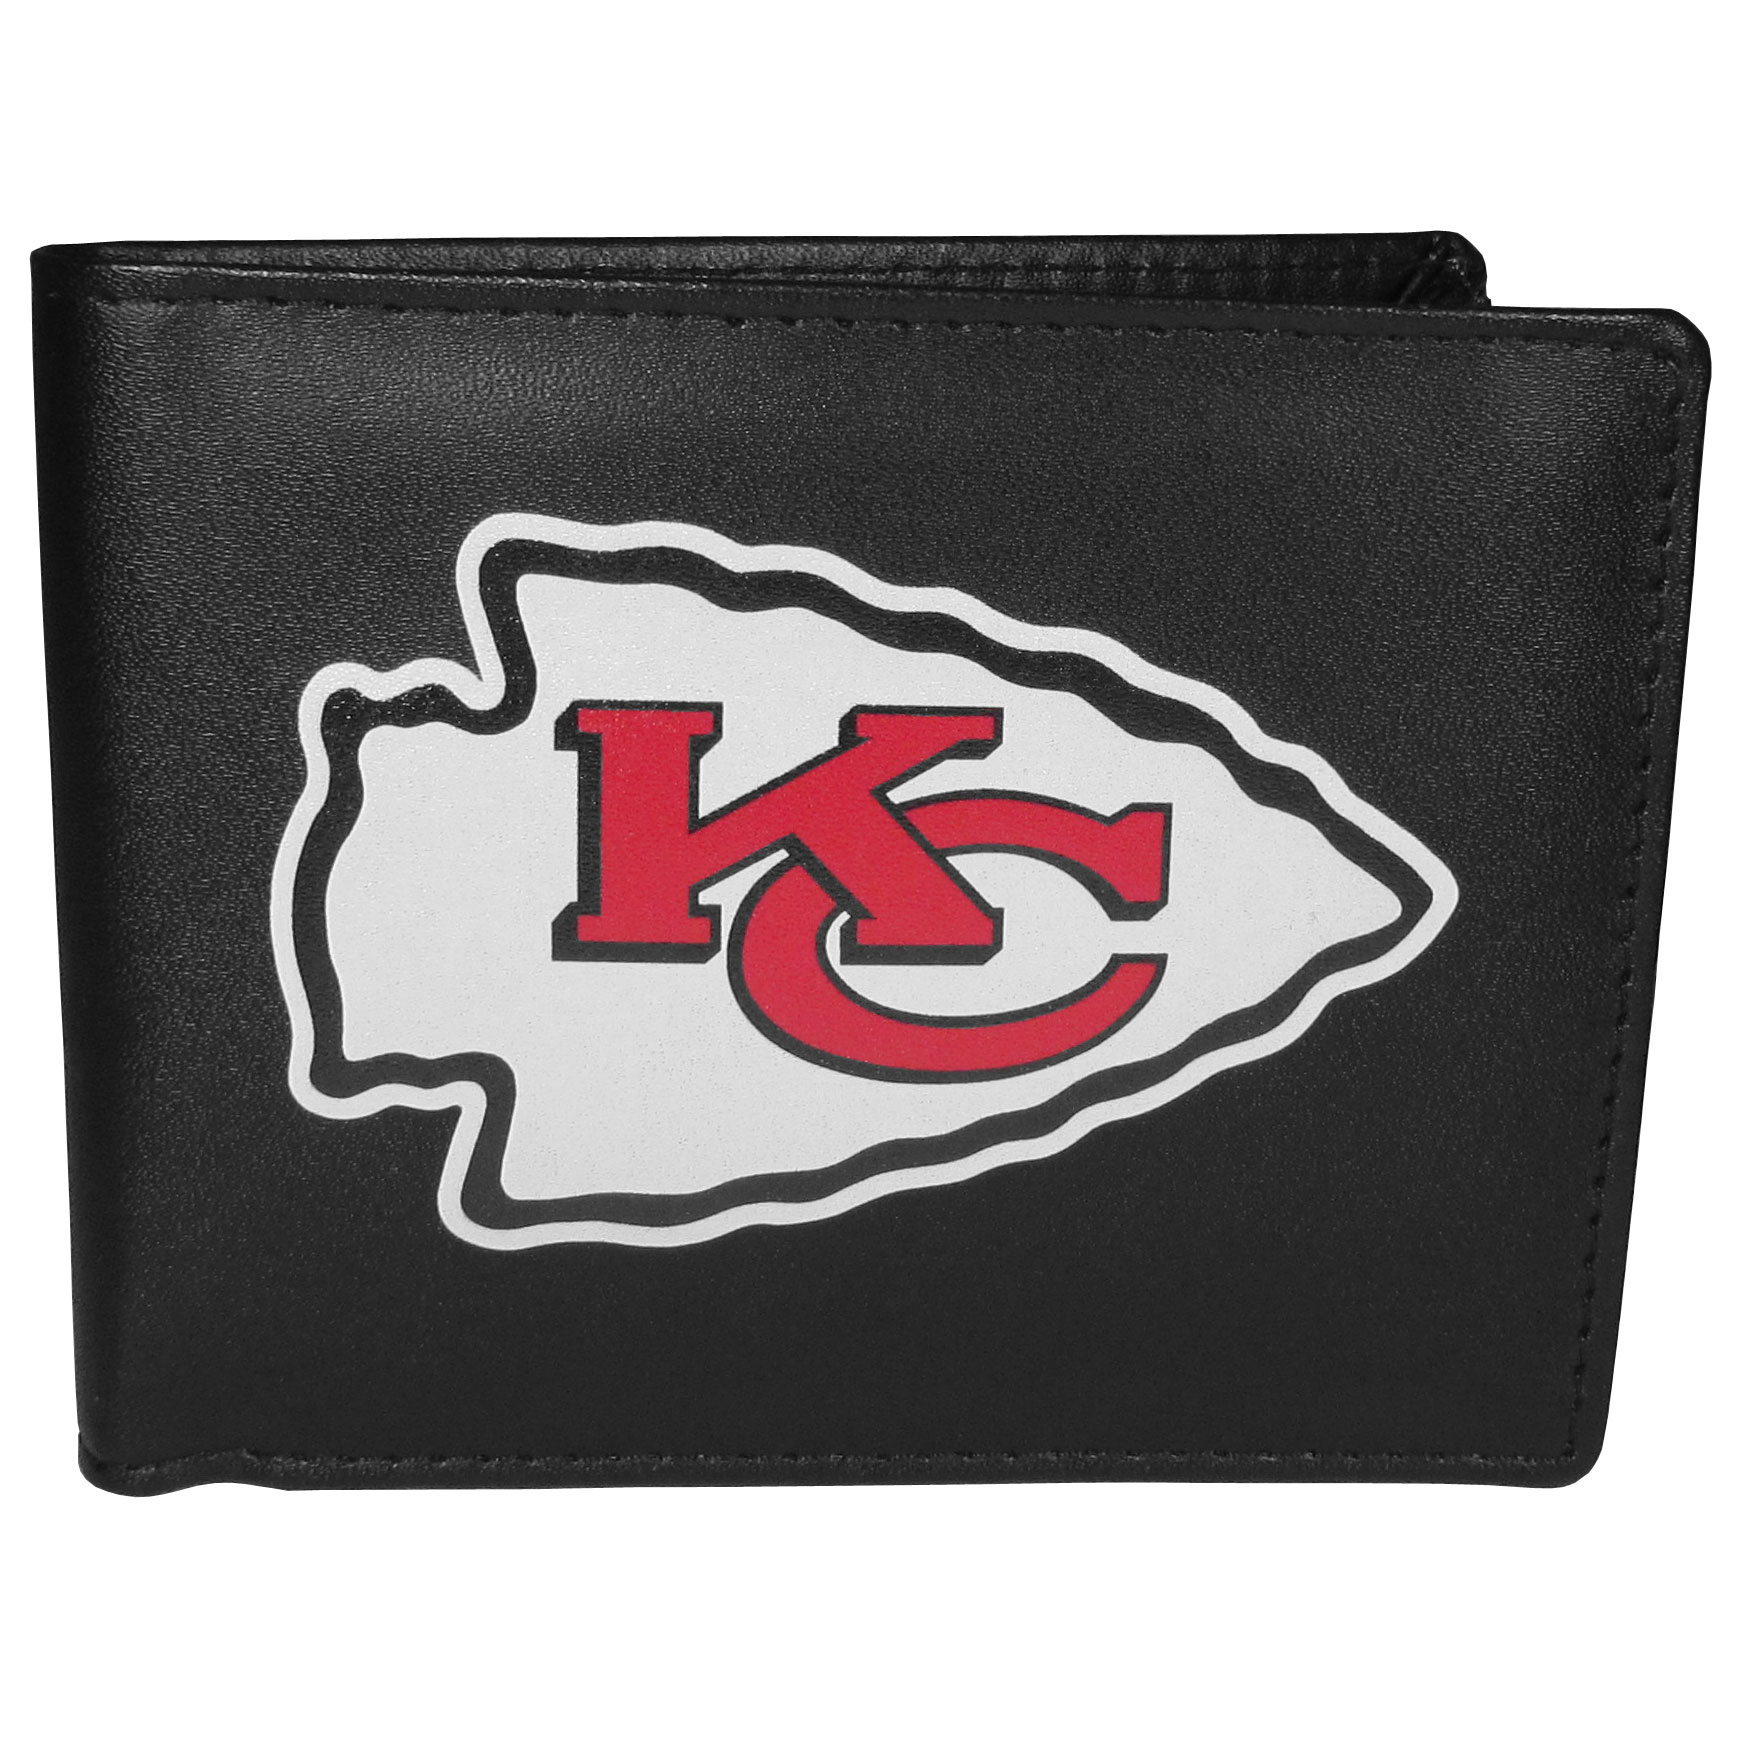 Kansas City Chiefs Leather Bi-fold Wallet, Large Logo - Our classic fine leather bi-fold wallet is meticulously crafted with genuine leather that will age beautifully so you will have a quality wallet for years to come. The wallet opens to a large, billfold pocket and numerous credit card slots and has a convenient windowed ID slot. The front of the wallet features an extra large Kansas City Chiefs printed logo.